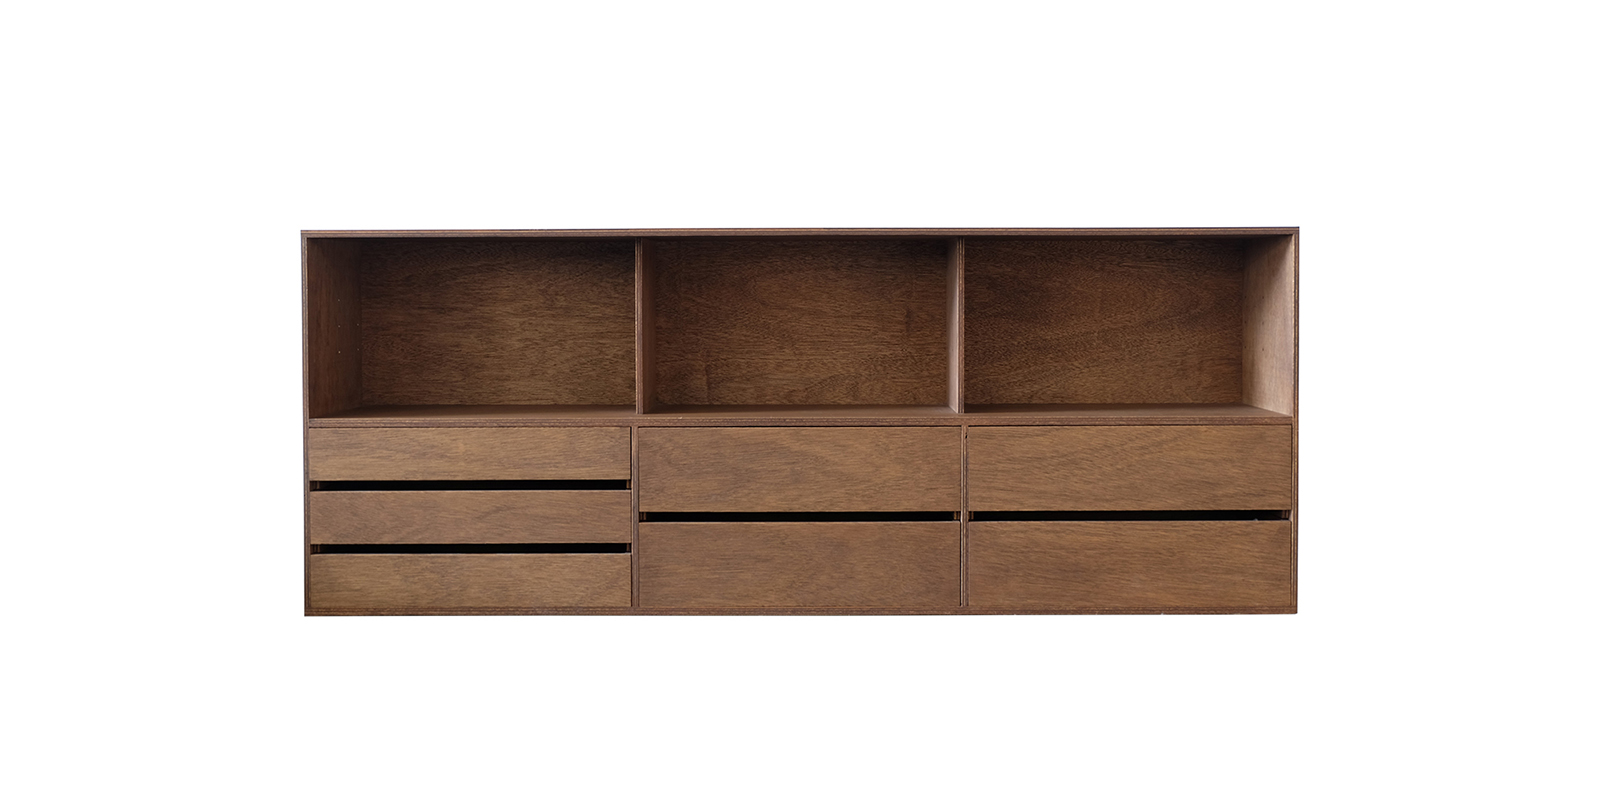 LAUAN SHELVES by order